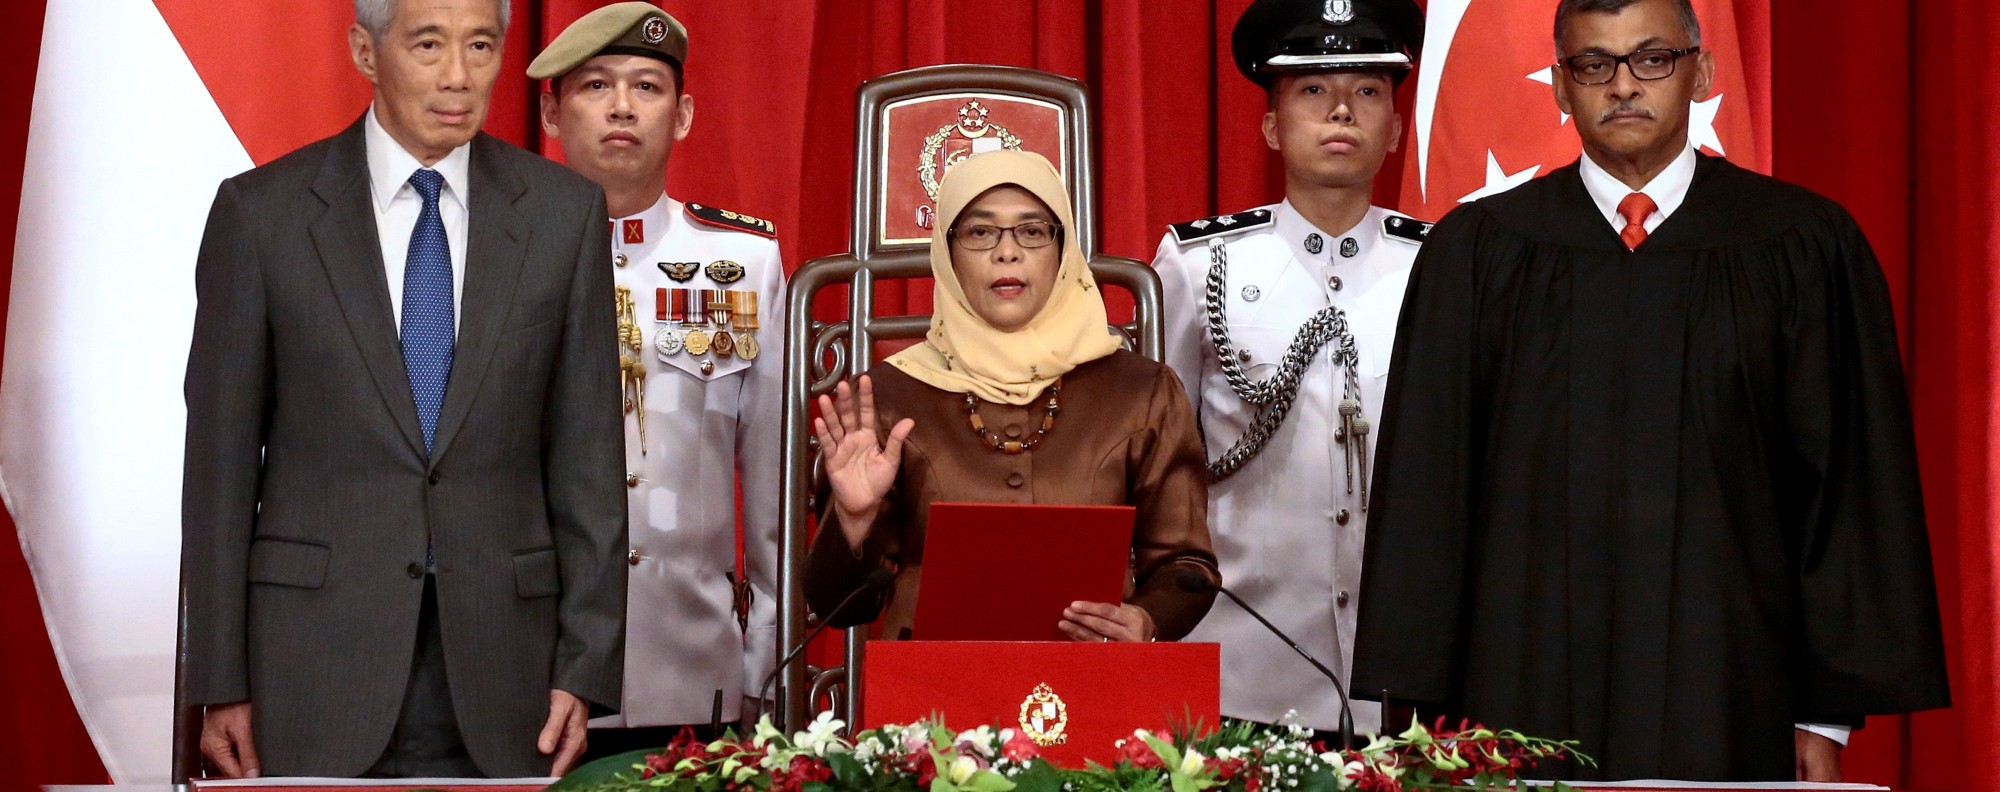 Halimah Yacob takes the oath of office. Photo: Reuters